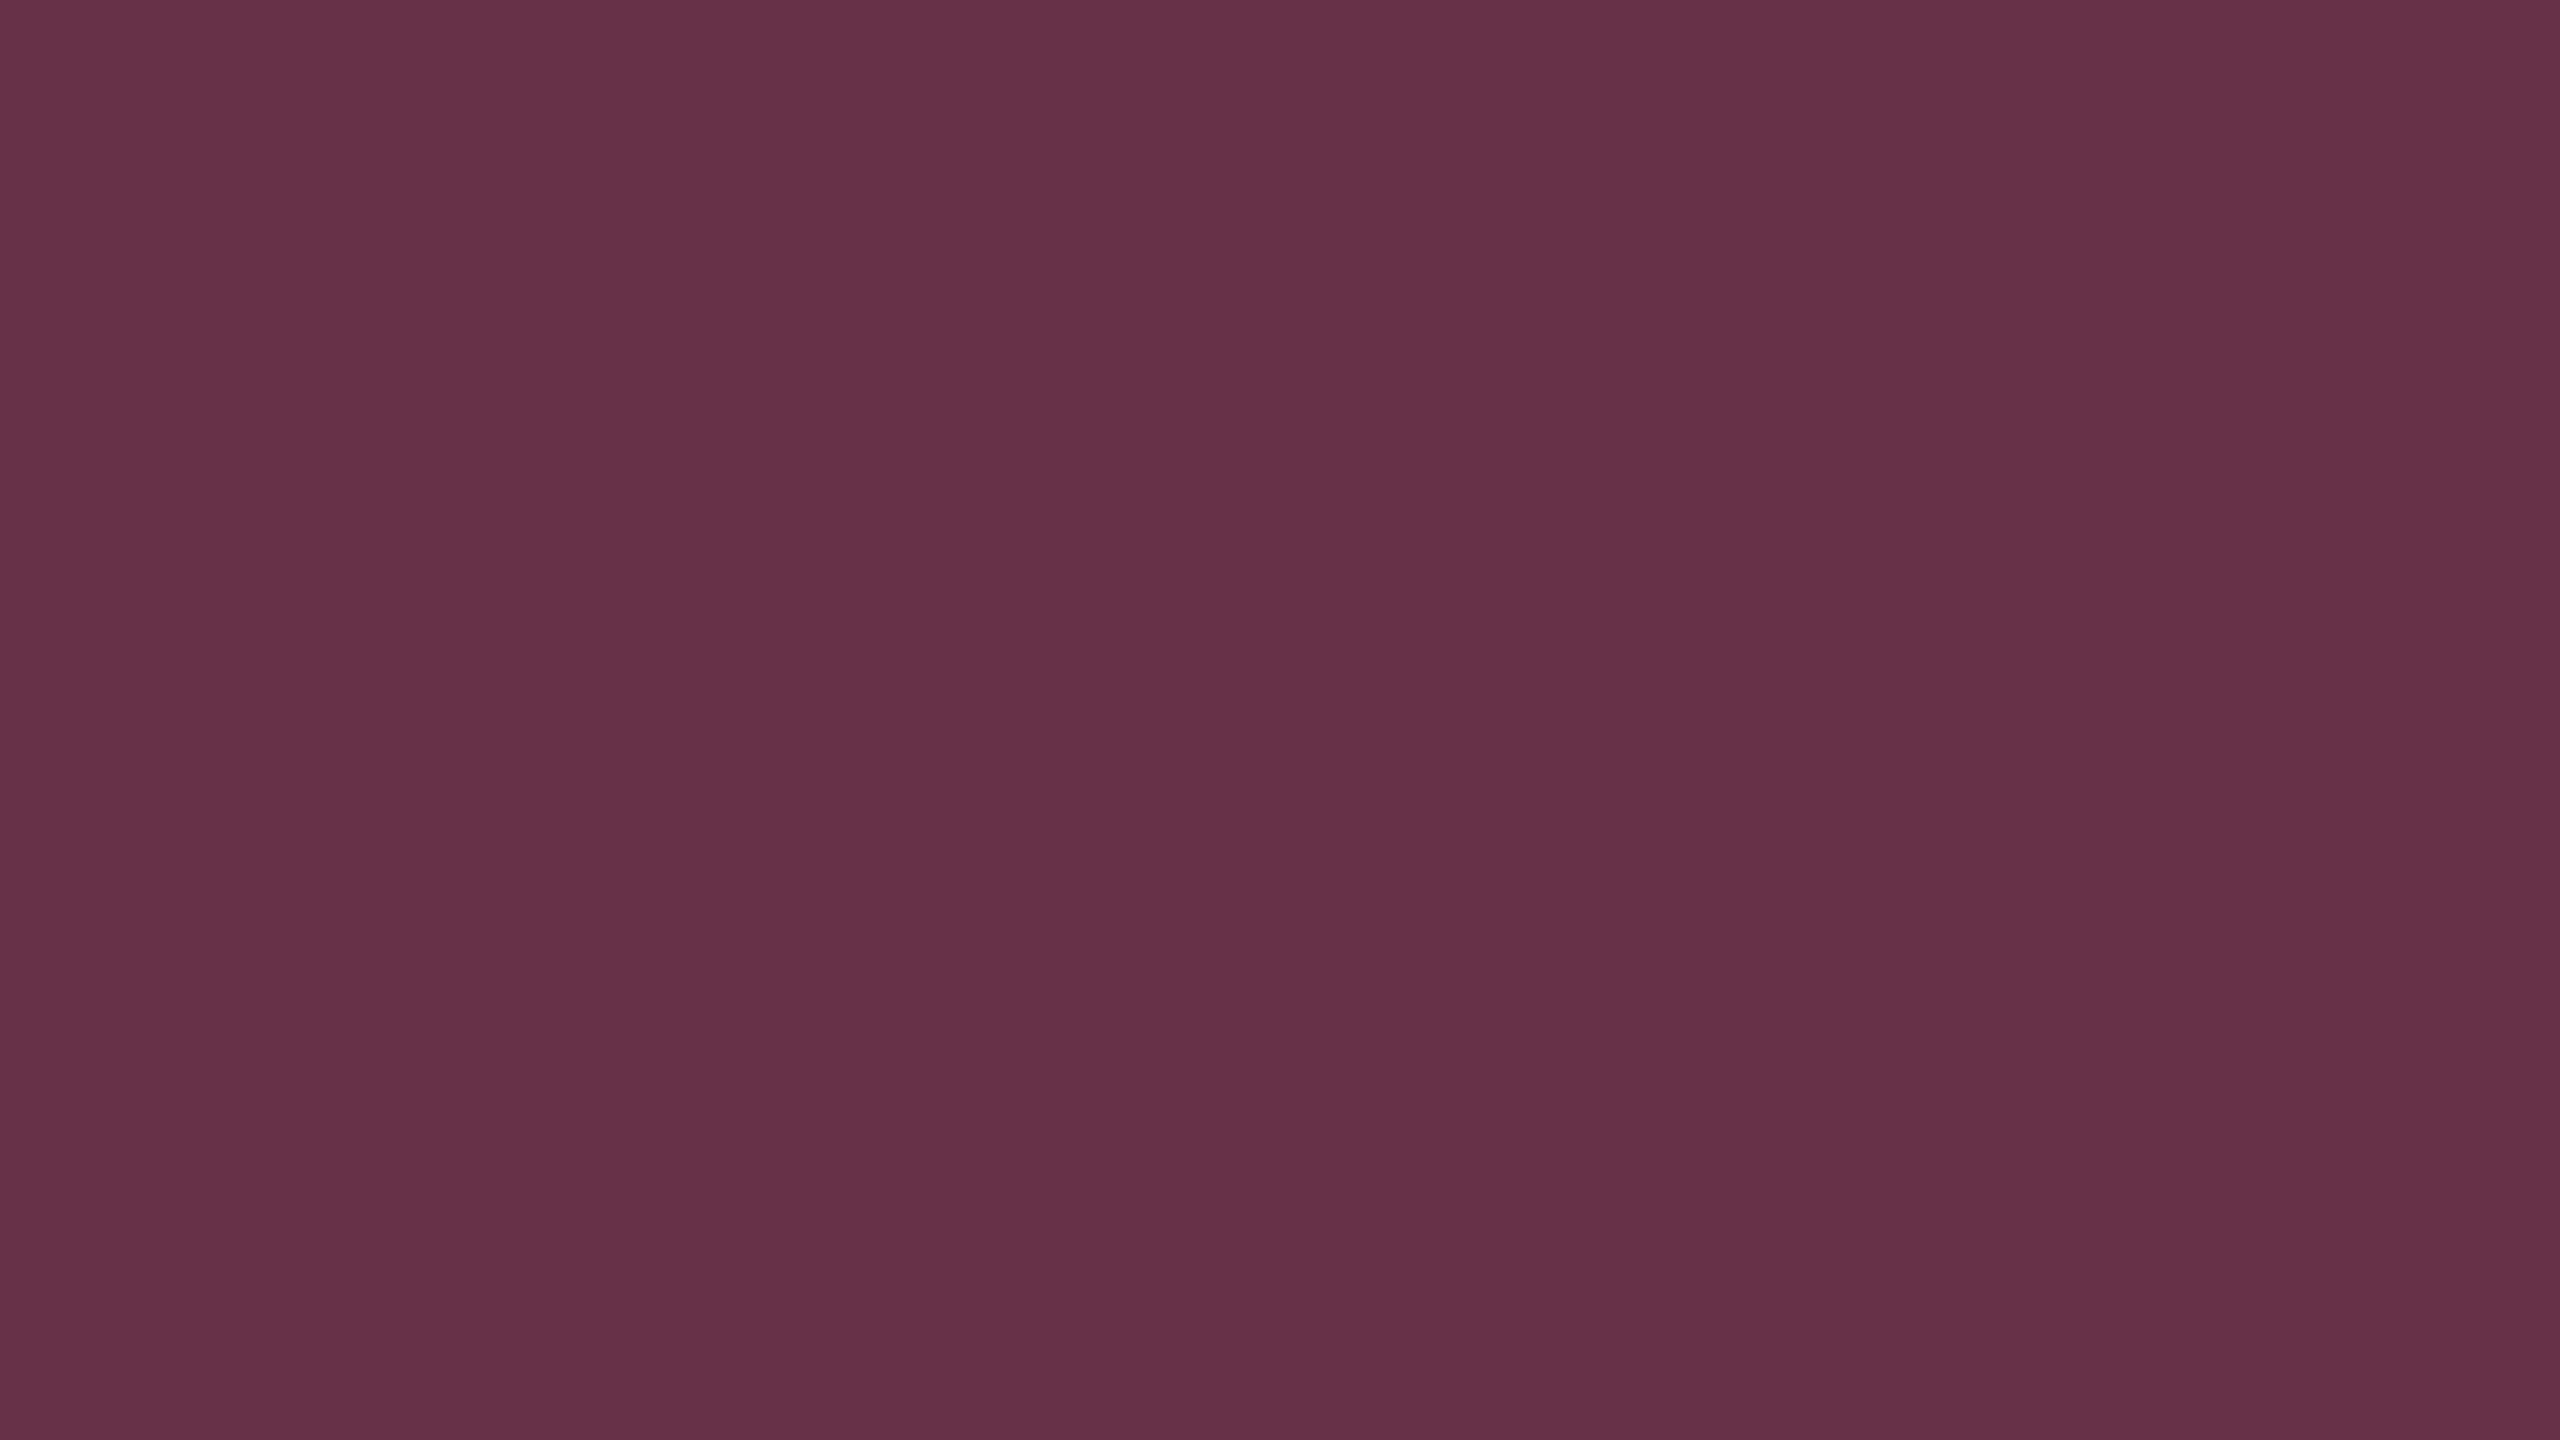 2560x1440 Wine Dregs Solid Color Background